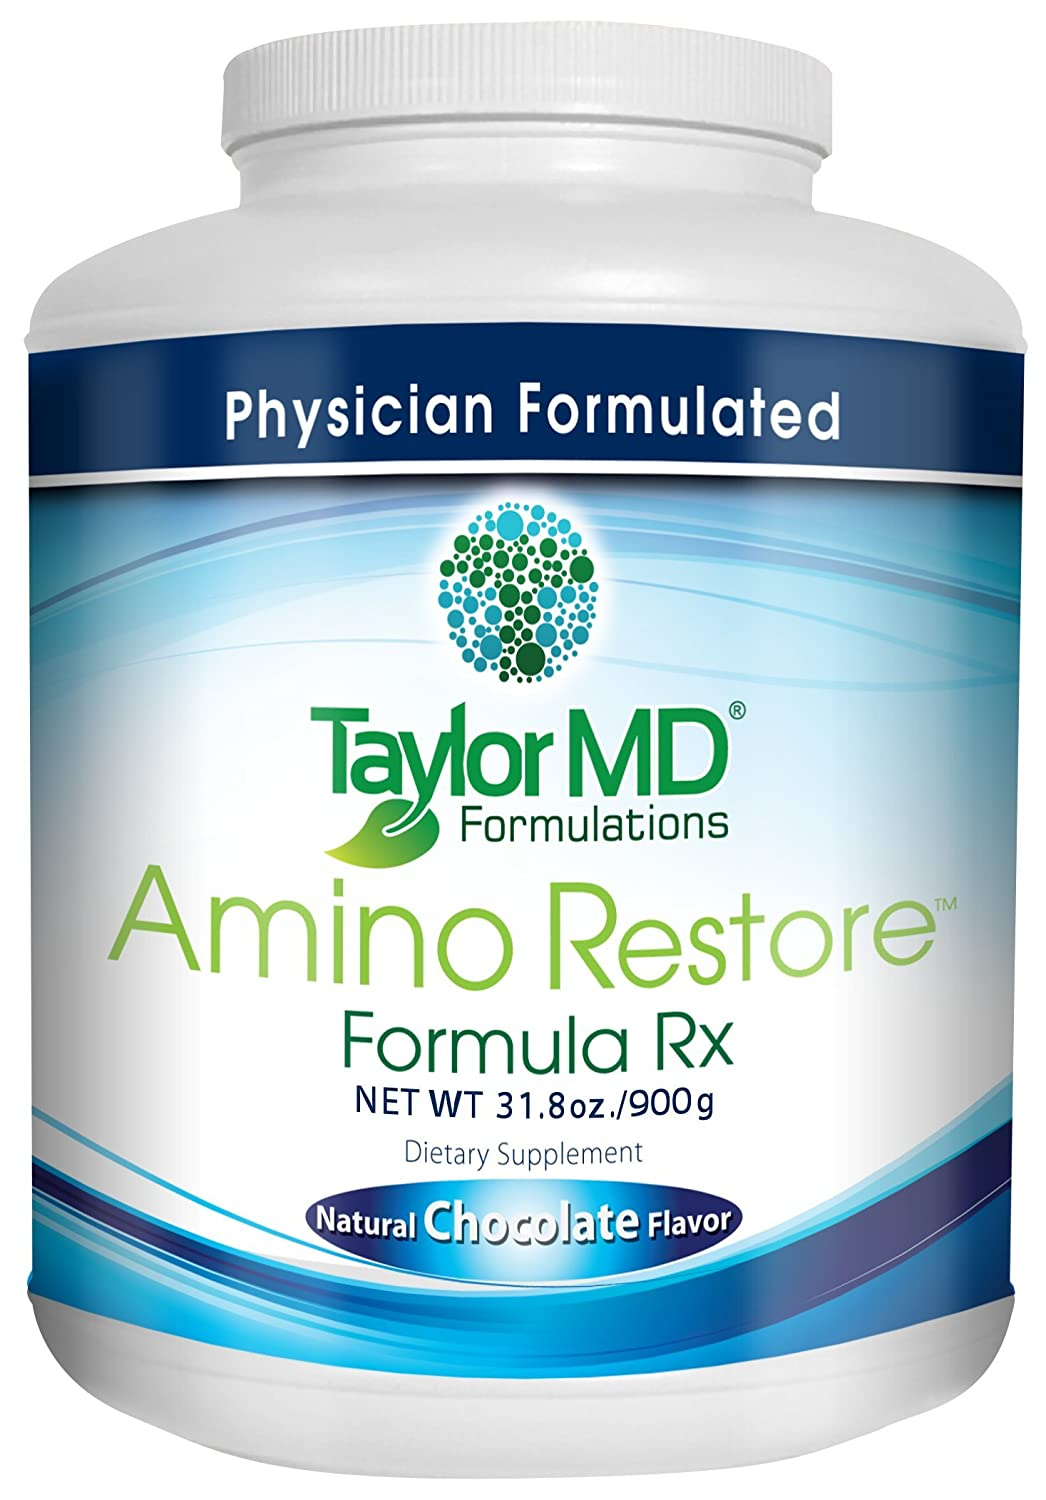 AminoRestore – Amino Acid Formula Rx – Chocolate Flavor – Essential Workout, Weight Loss Provides Nutrients, Vitamins, Minerals Optimise Metabolism, Energy, Body Composition Gut Health Suitable for Vegetarians Dairy Free – Guaranteed By Taylor MD Formulations